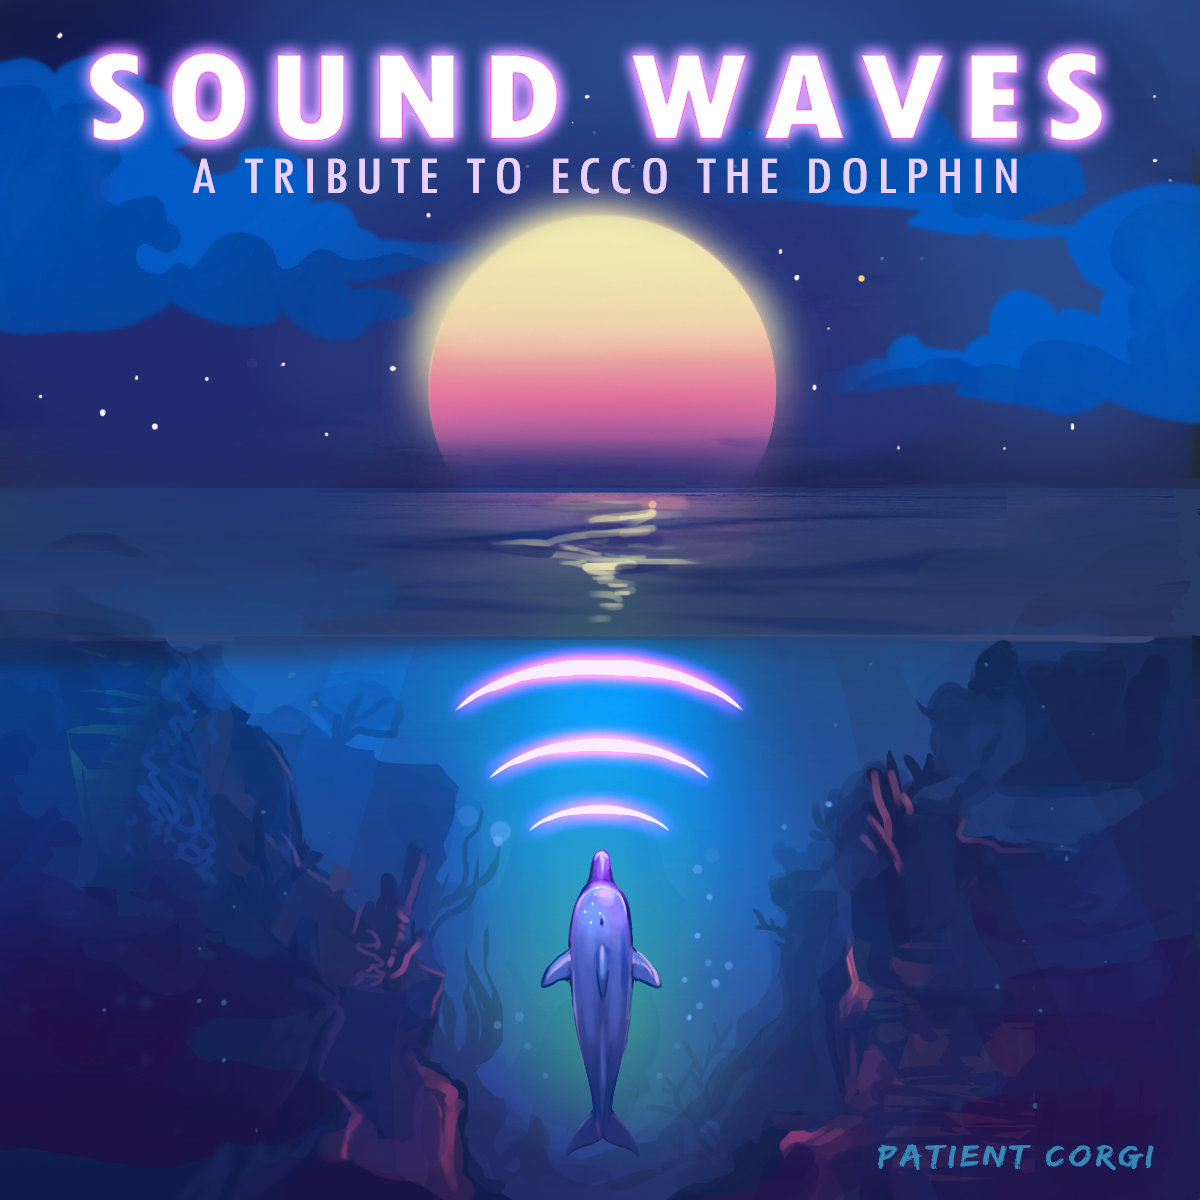 b25f3a3f8507 from SOUND WAVES  A Tribute to Ecco the Dolphin by Patient Corgi